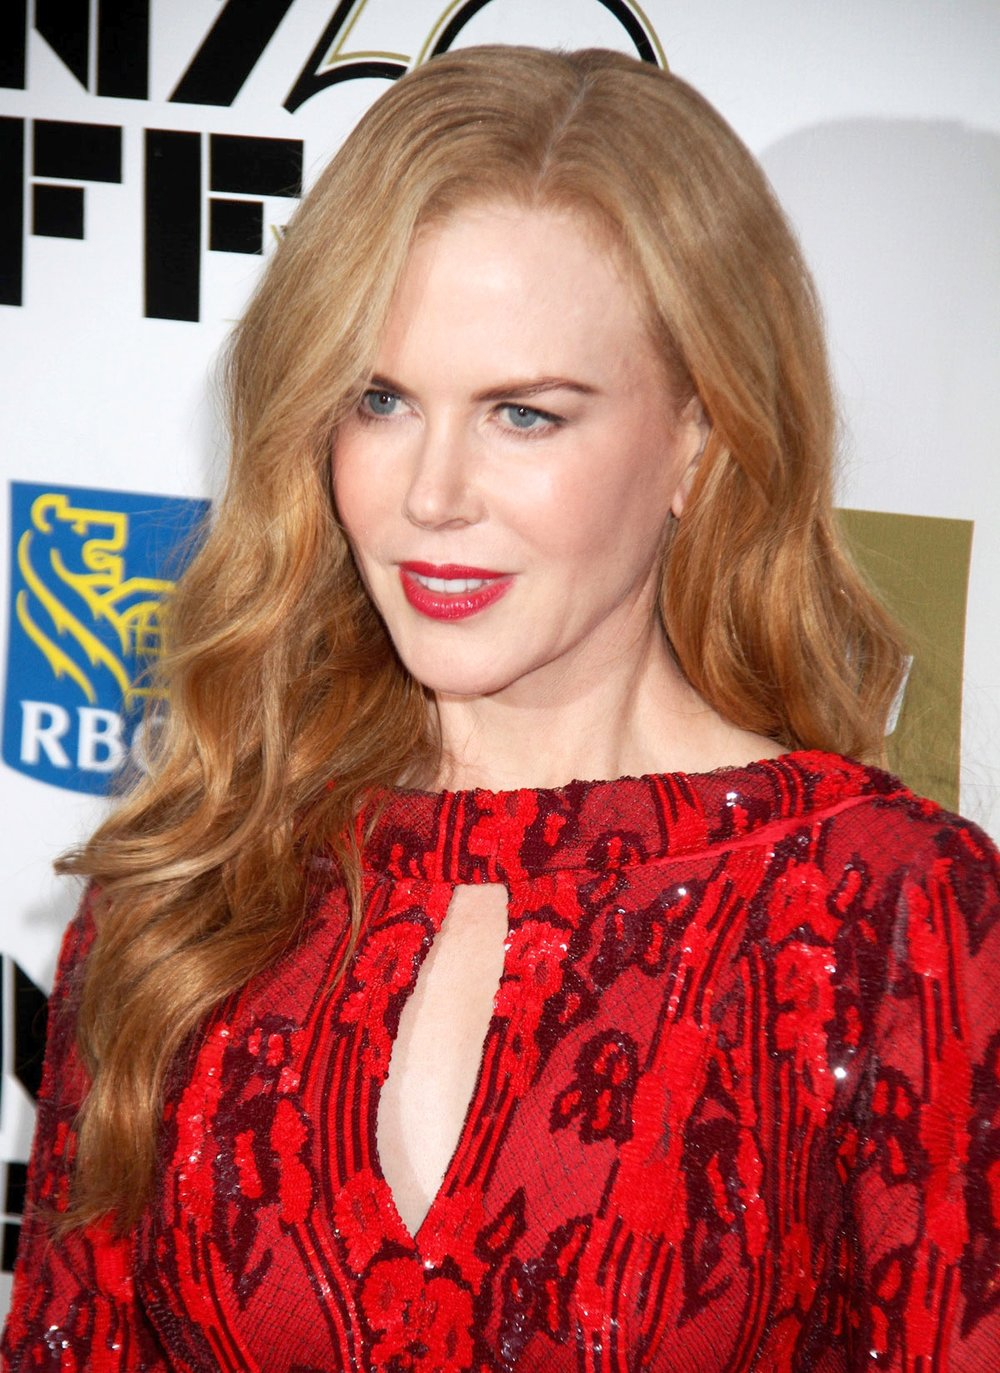 NICOLE-KIDMAN-at-Nicole-Kidman-Gala-Tribute-at-the-50th-Annual-New-York-Film-Festival-3.jpg